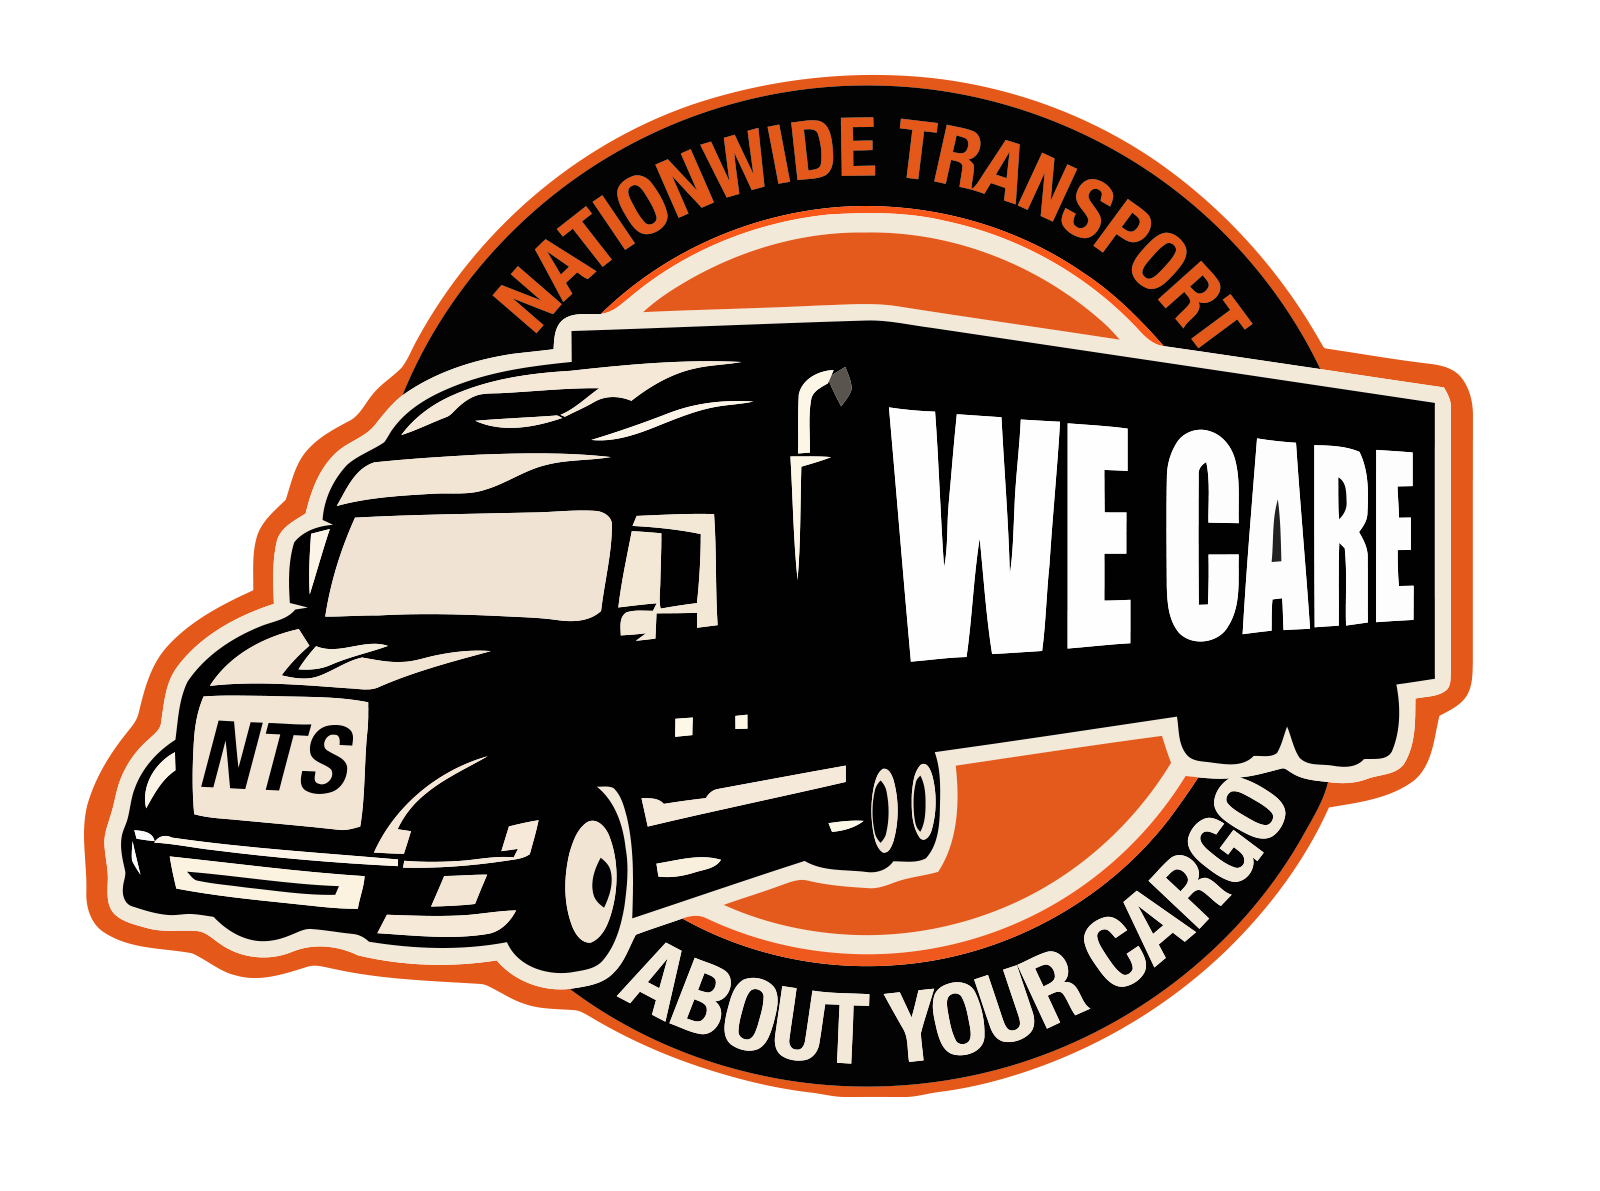 Nationwide Transport Services